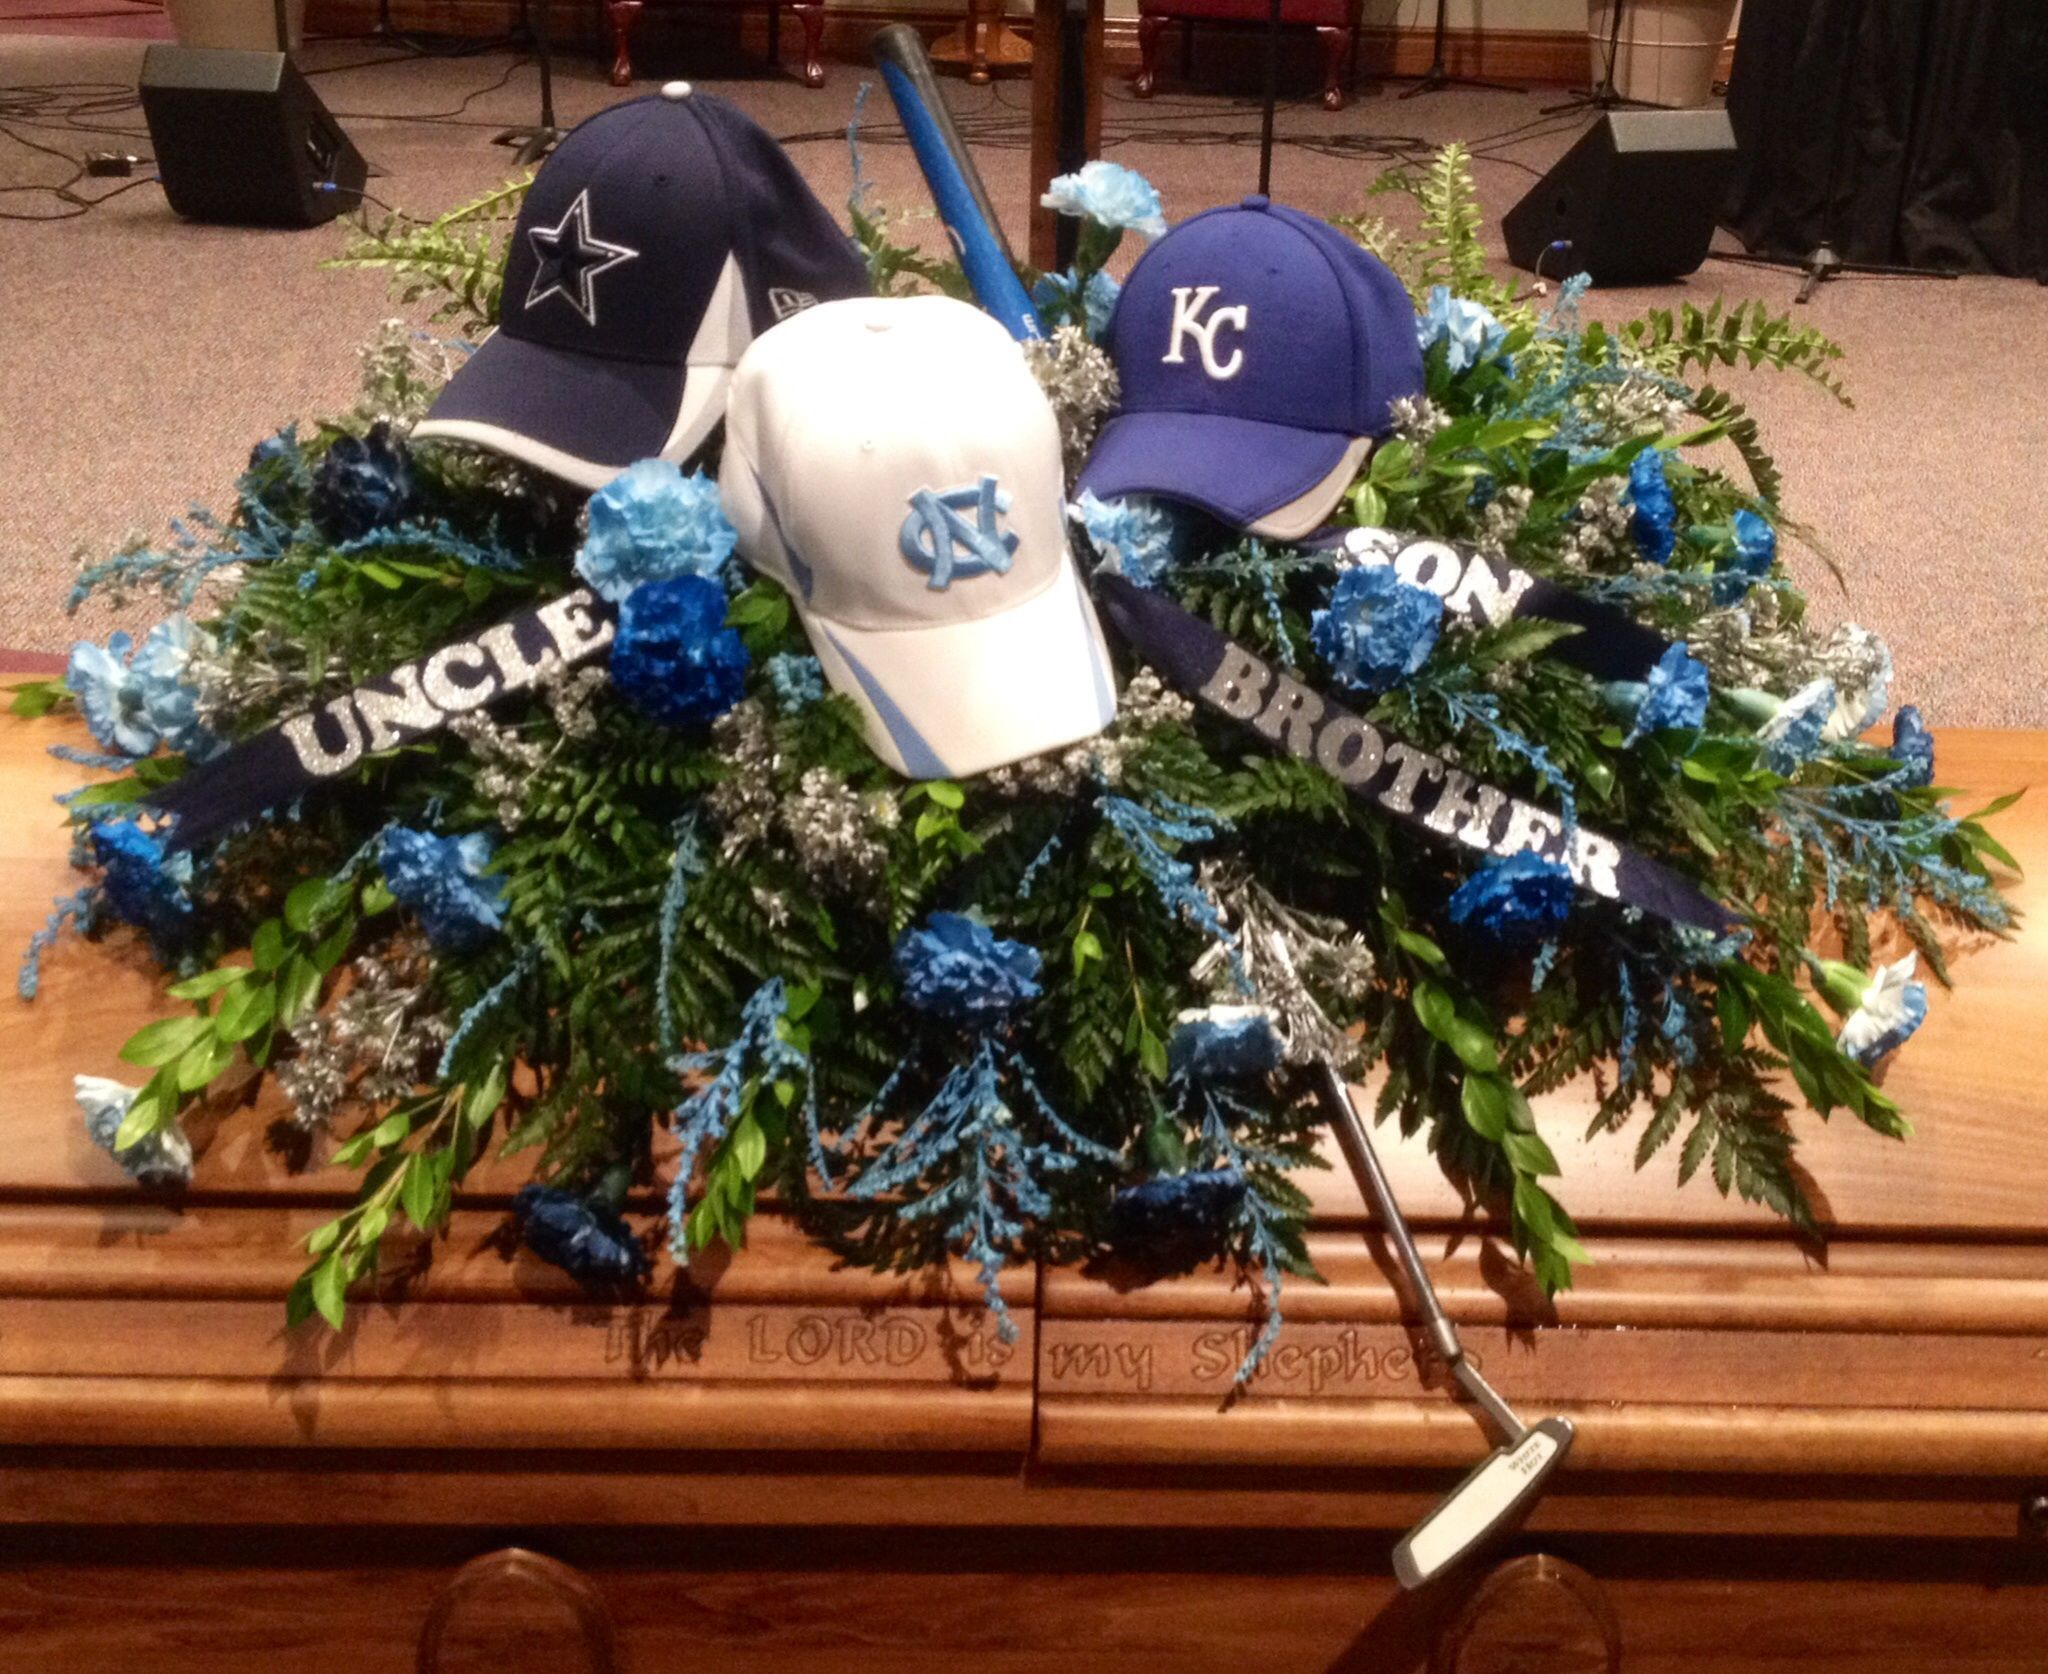 Casket spray for the ultimate golfer north carolina fan cowboys casket spray for the ultimate golfer north carolina fan cowboys fan royals fan izmirmasajfo